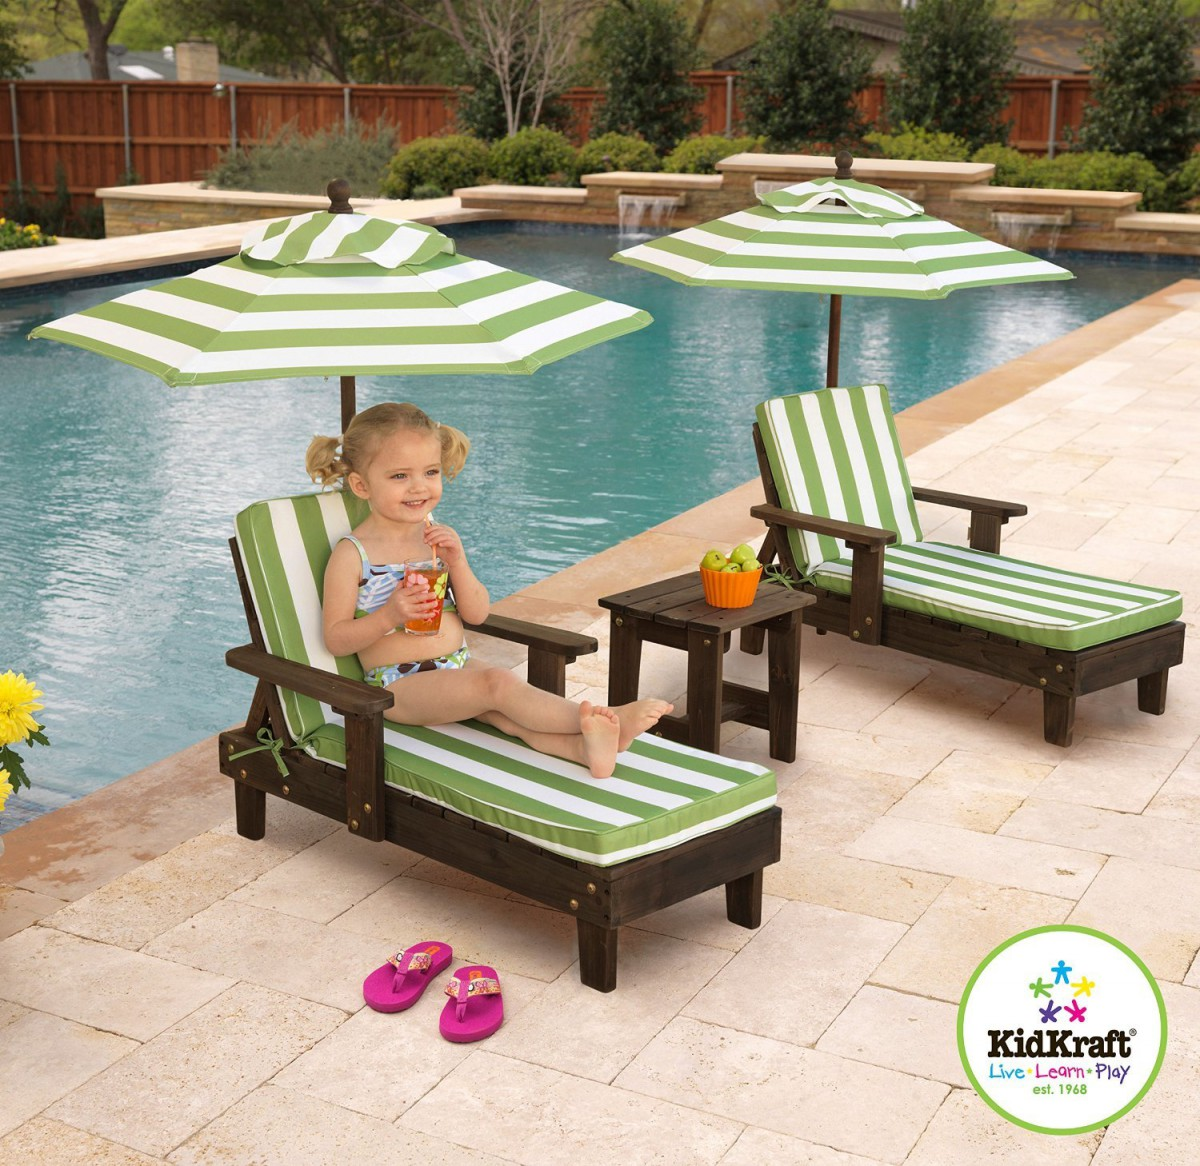 Kidkraft outdoor chaise lounge chairs and umbrella set for Poolside table and chairs